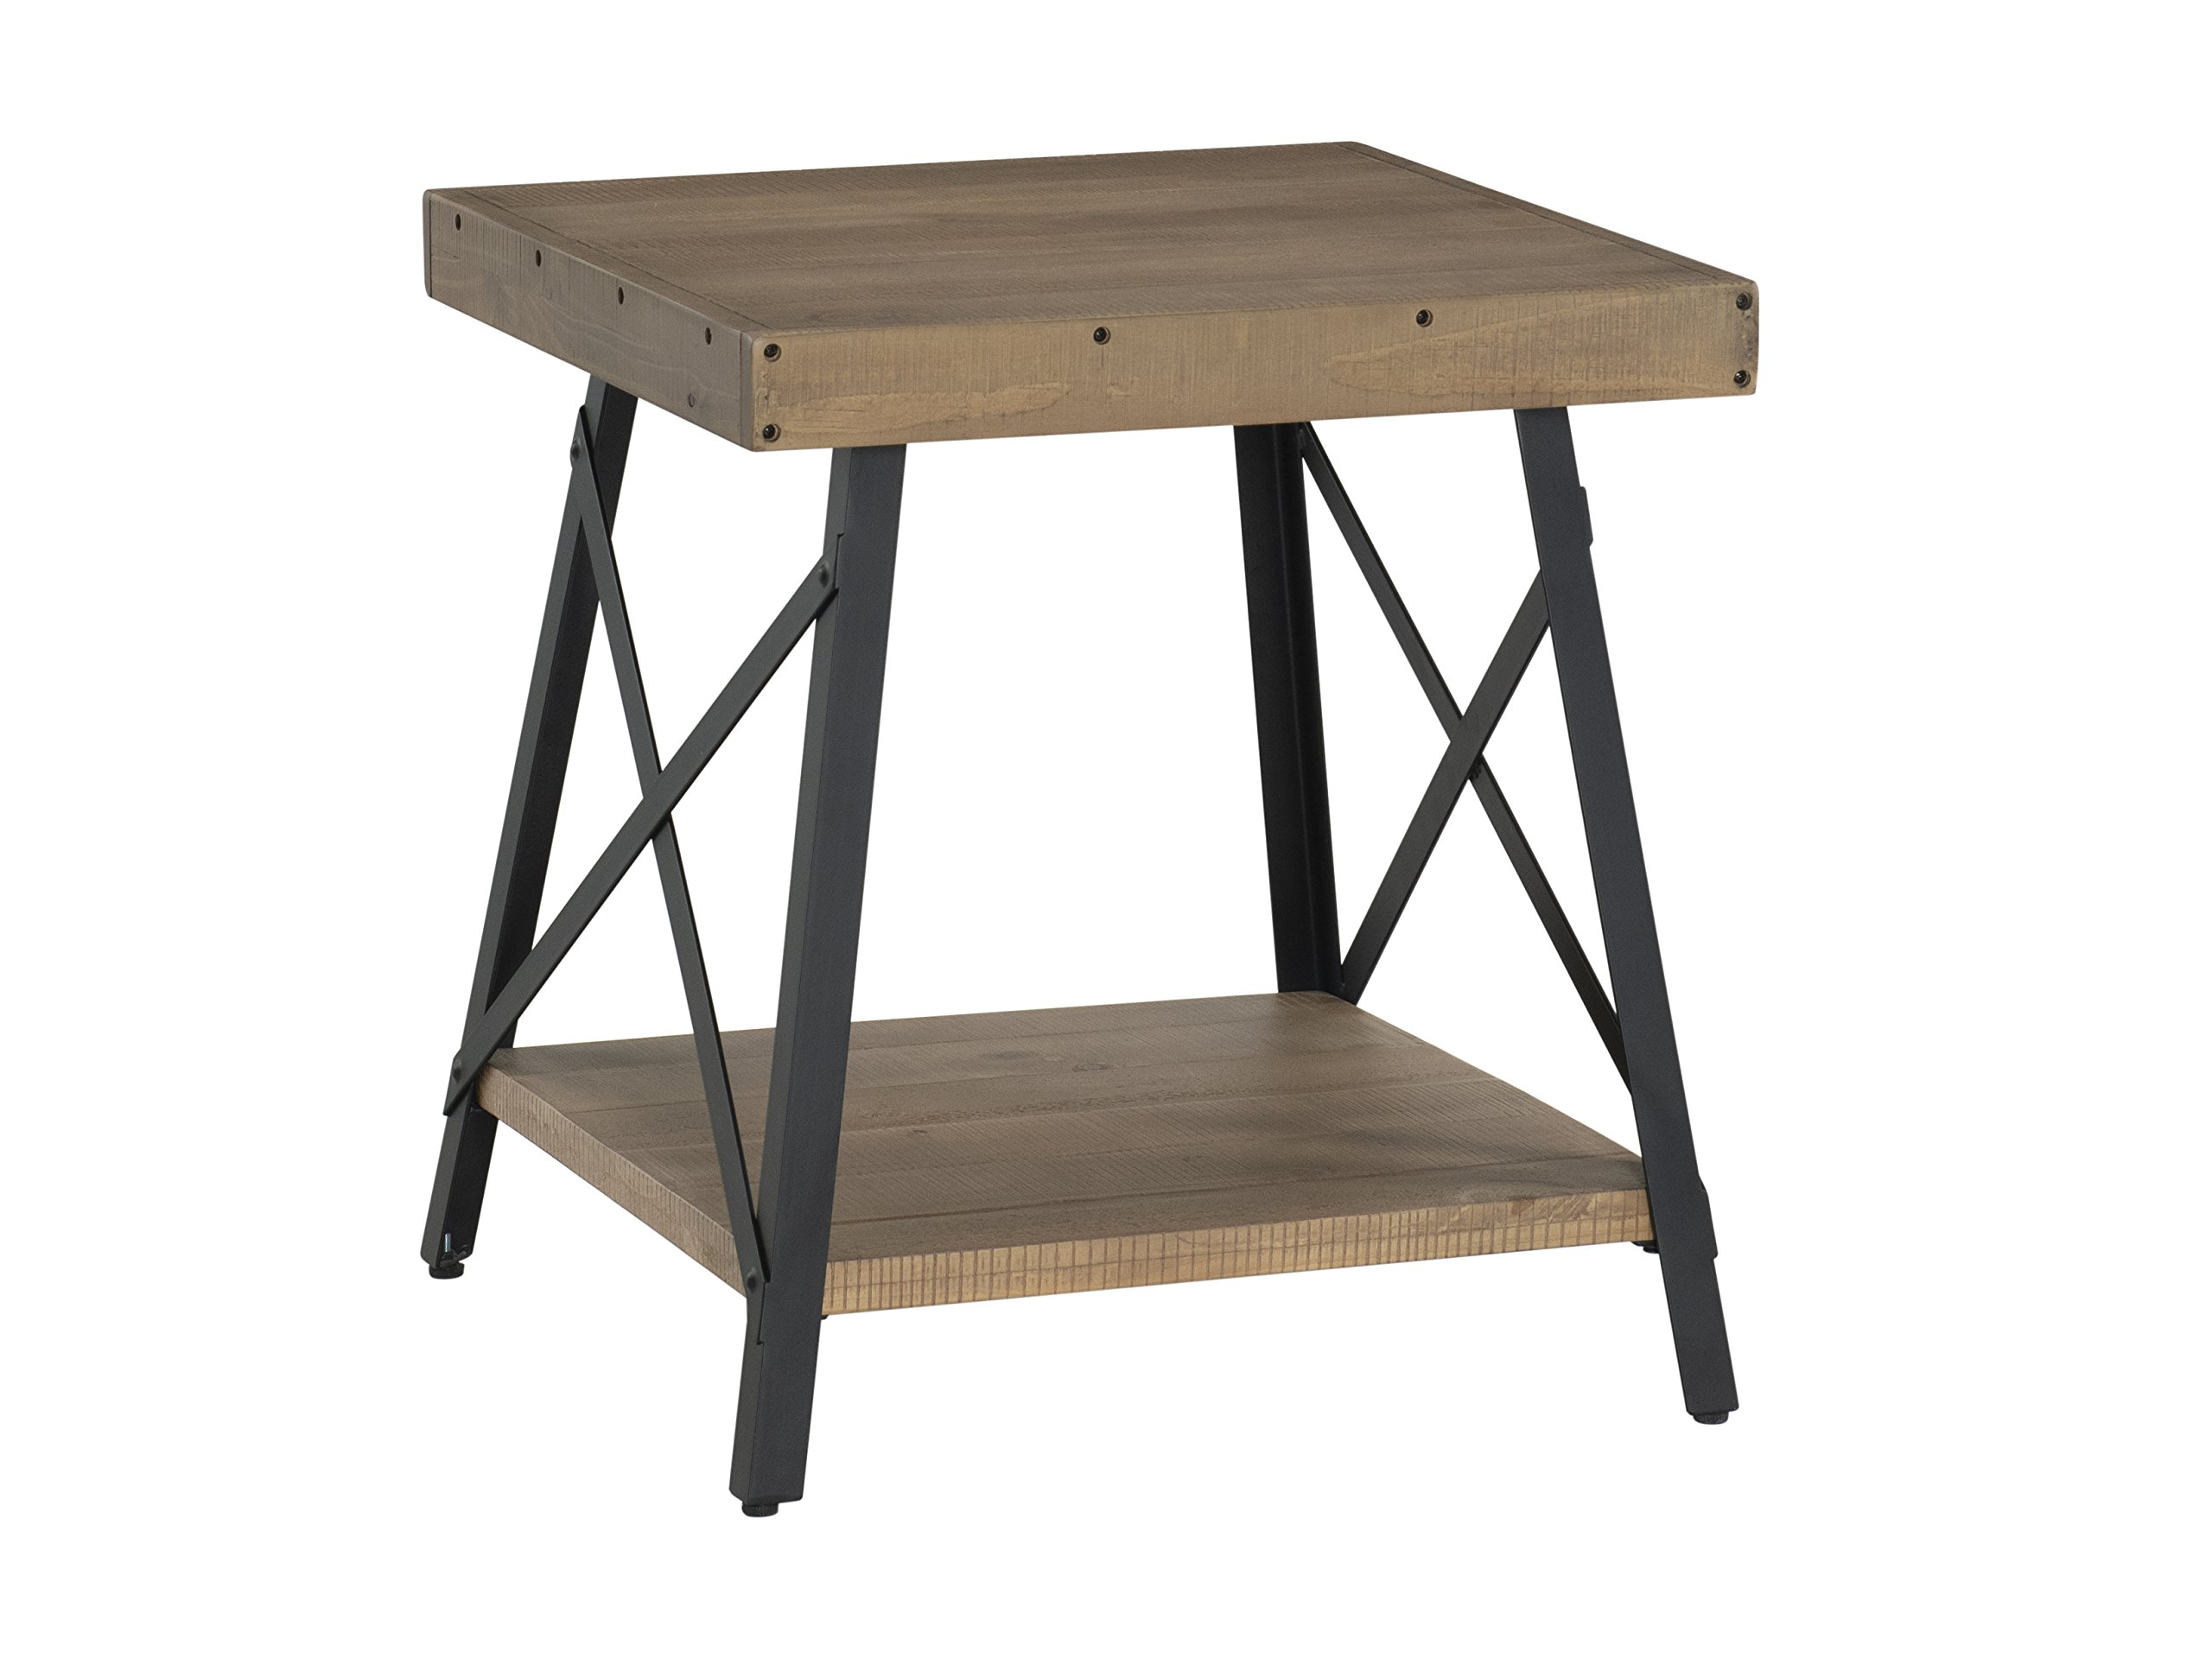 """Martin Svensson Home Xavier End Table, Reclaimed Natural - Finish: Reclaimed Natural - reminiscent of Reclaimed wood found in an old barn or warehouse Crafted from solid wood - New Zealand pine with rough hewn saw marks Exposed rivets across the Top and Black Steel metal """"x"""" cross on the end caps give it a distinct industrial and rustic look - living-room-furniture, living-room, end-tables - 81vtPvZVvcL -"""